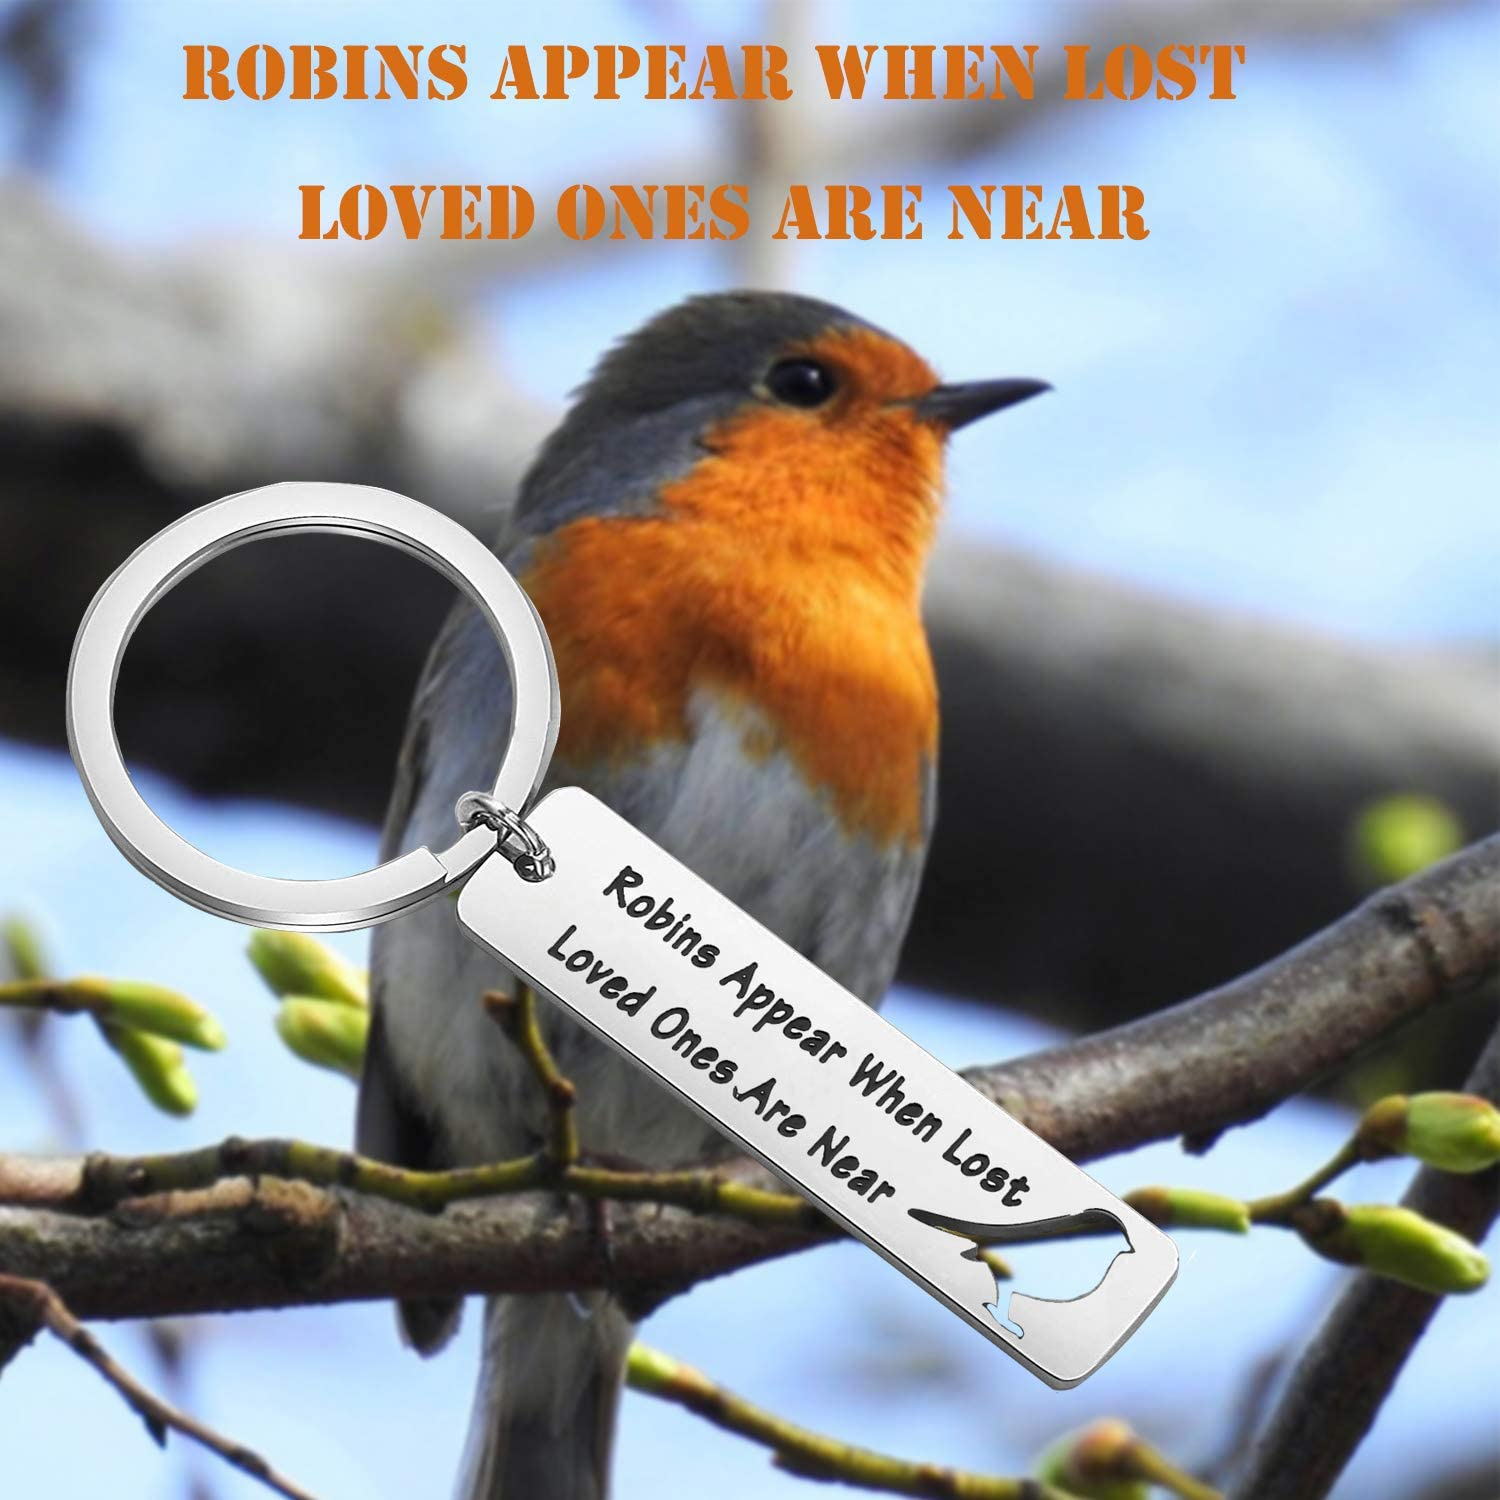 PLITI Memorial Gift Robins Appear When Lost Loved Ones are Near Keychain Gifts for Loss of Loved One